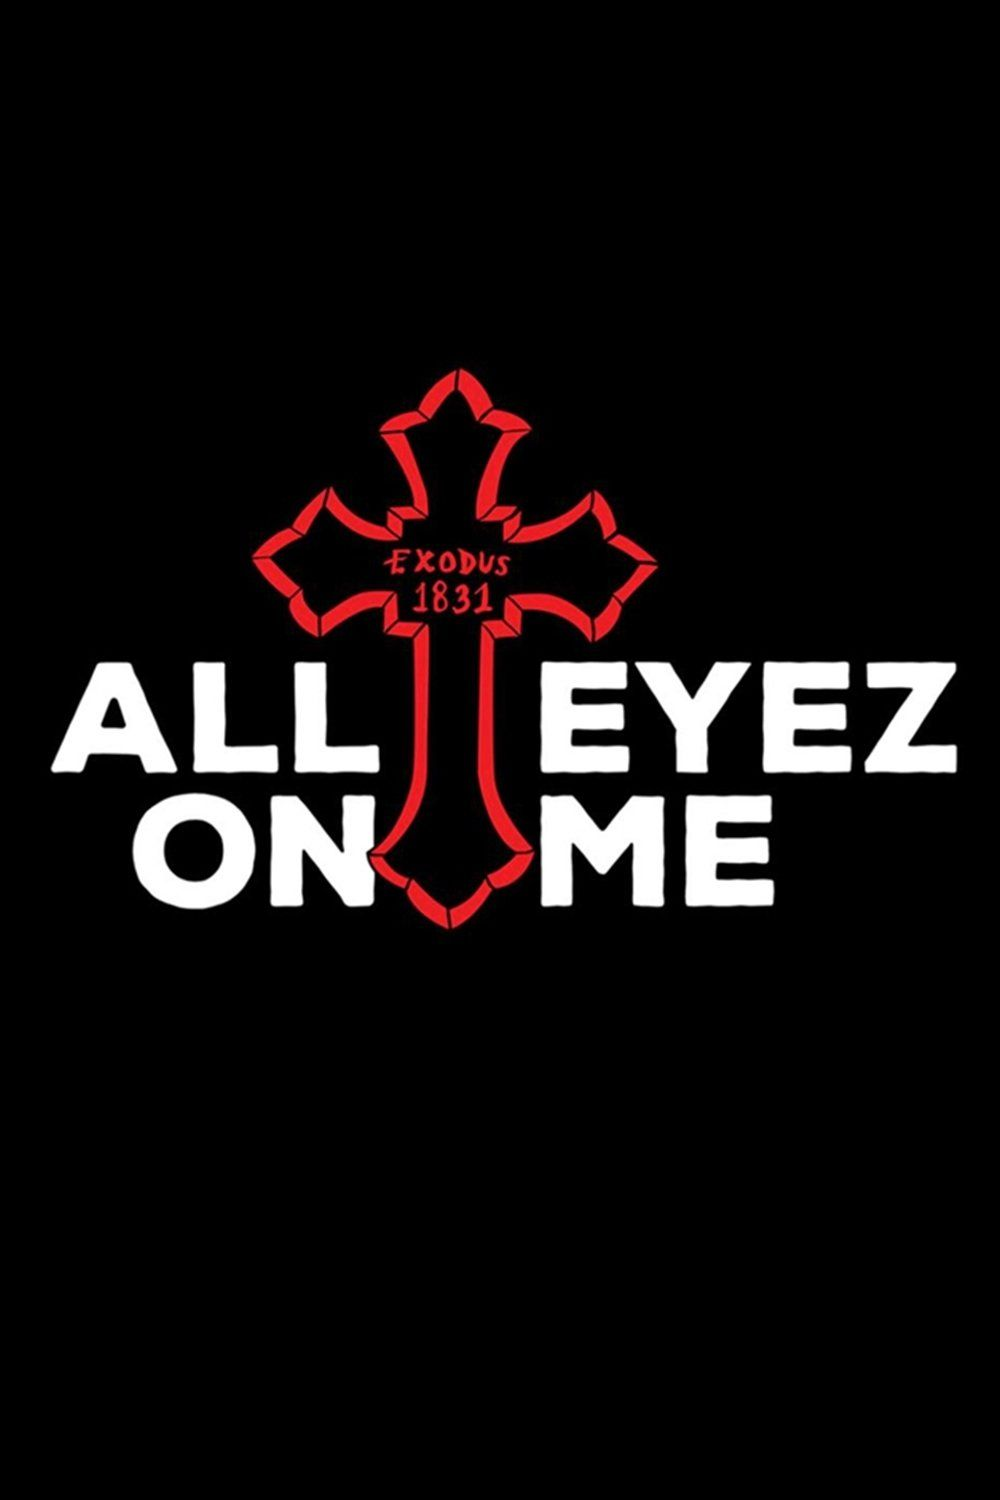 watch all eyez on me online streaming movieream stream all eyez on me full movie online in hq only at movieream no sign up or credit cards required to watch all eyez on me